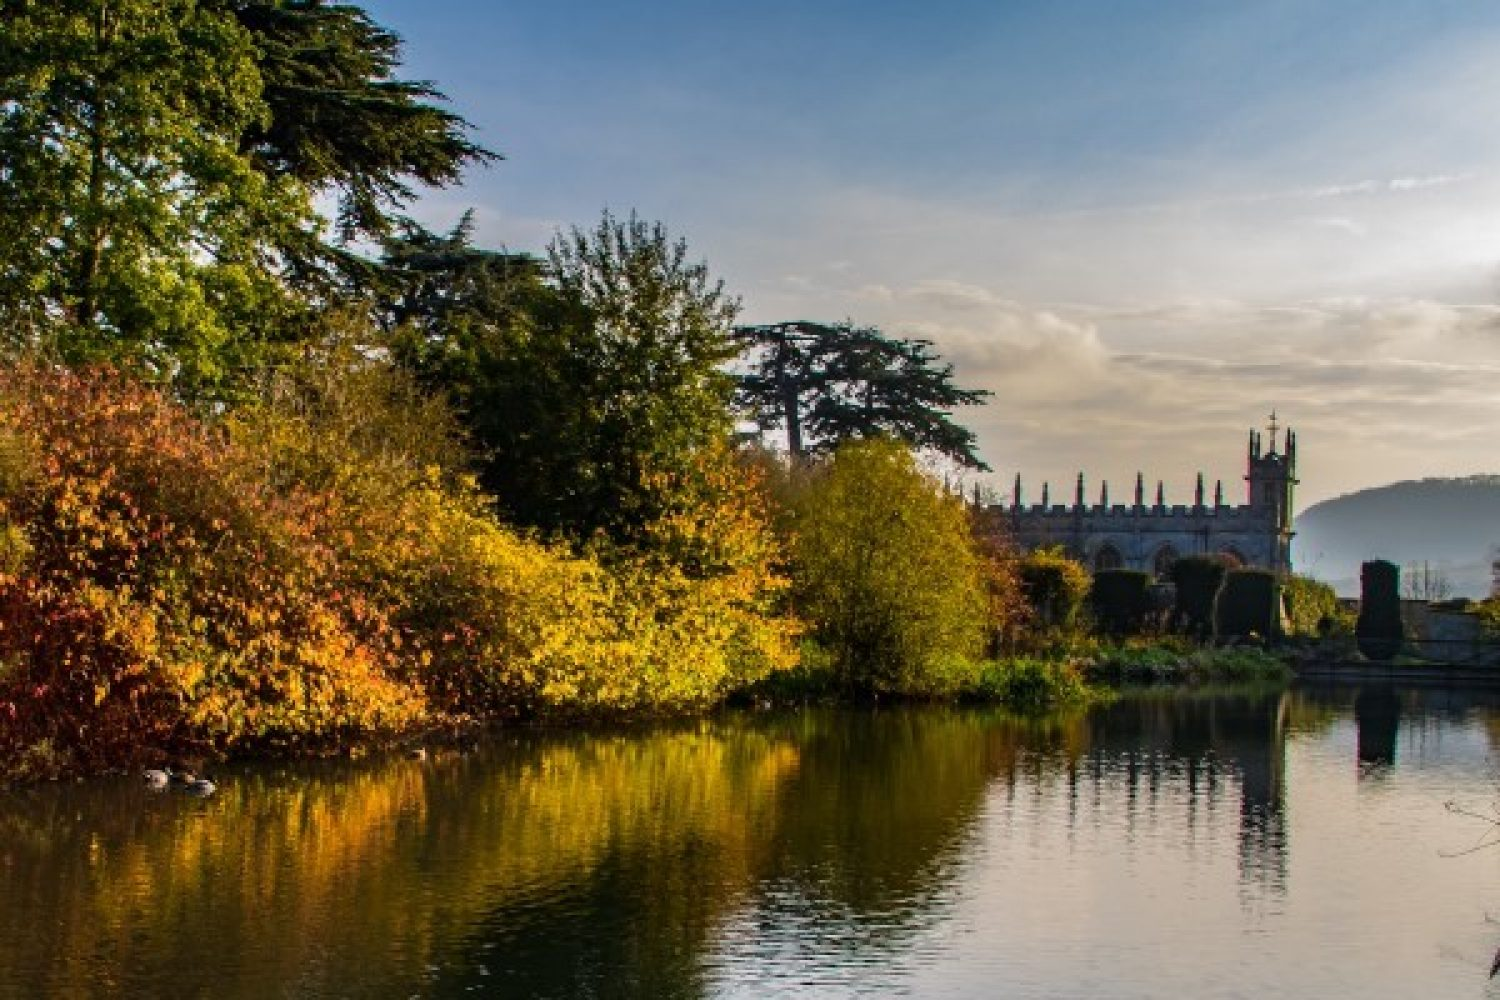 Lakeside shot of autumn foliage at Sudeley Castle